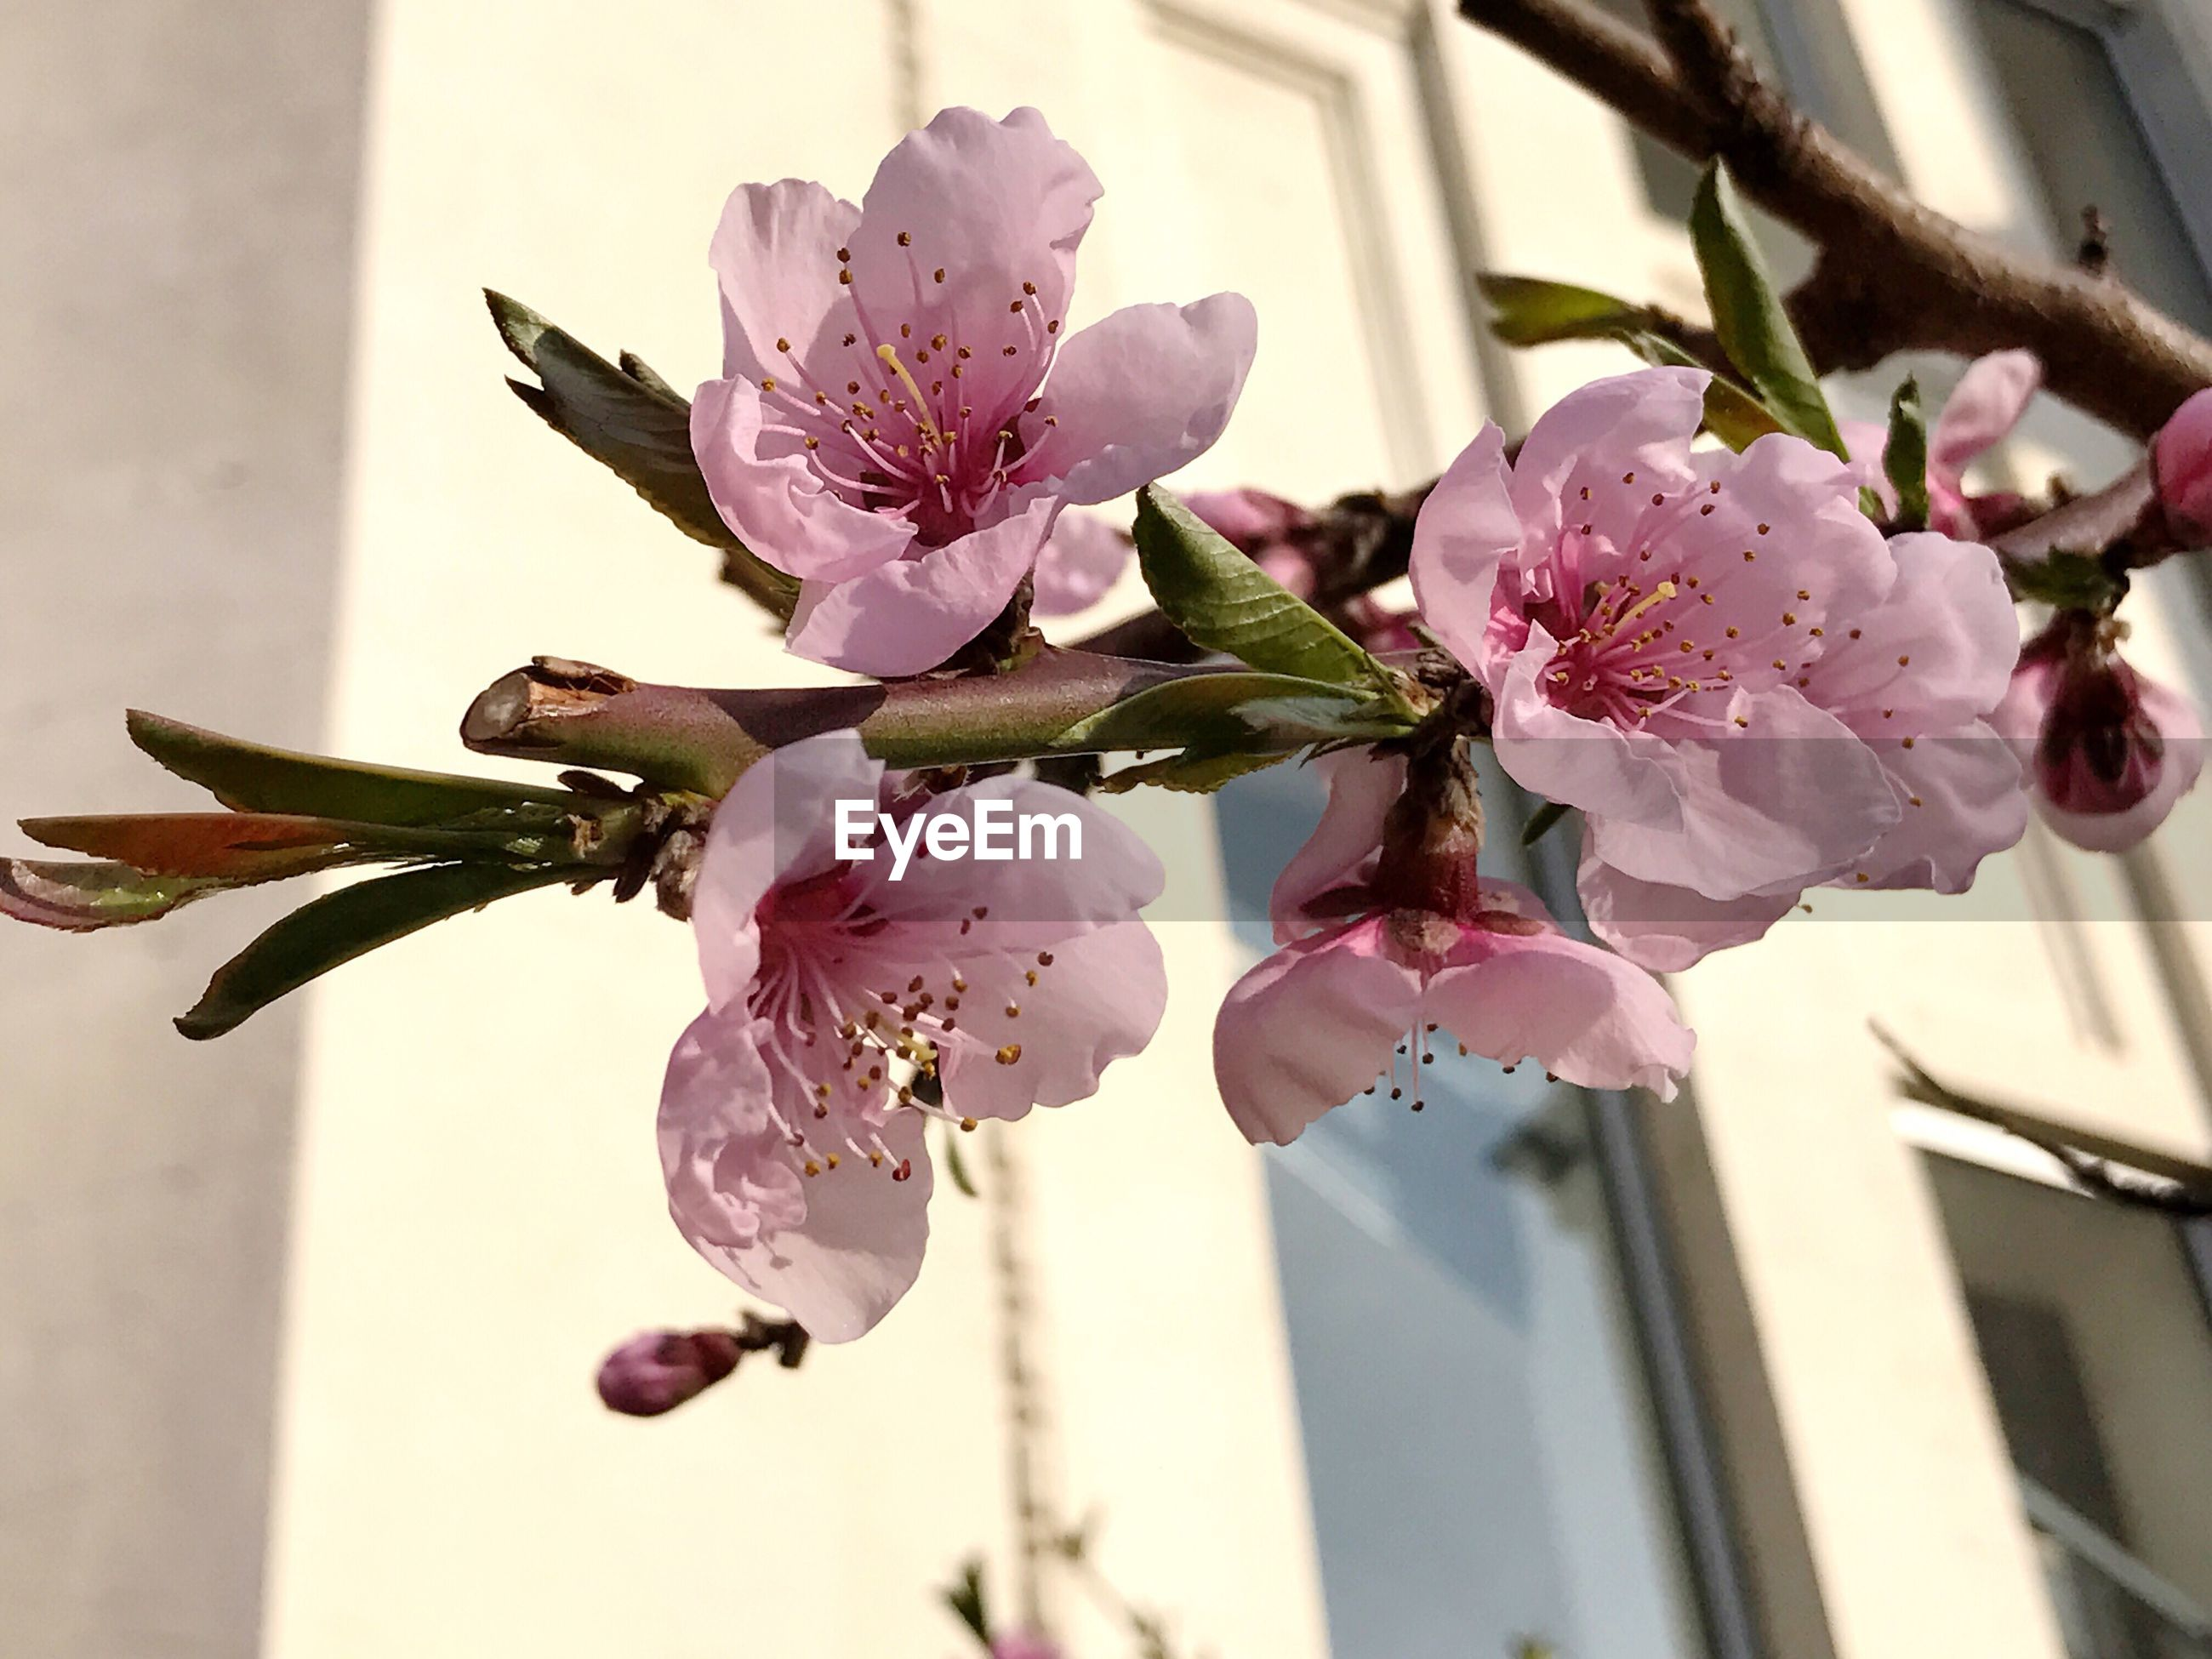 CLOSE-UP OF FRESH PINK FLOWERS BLOOMING IN BRANCH